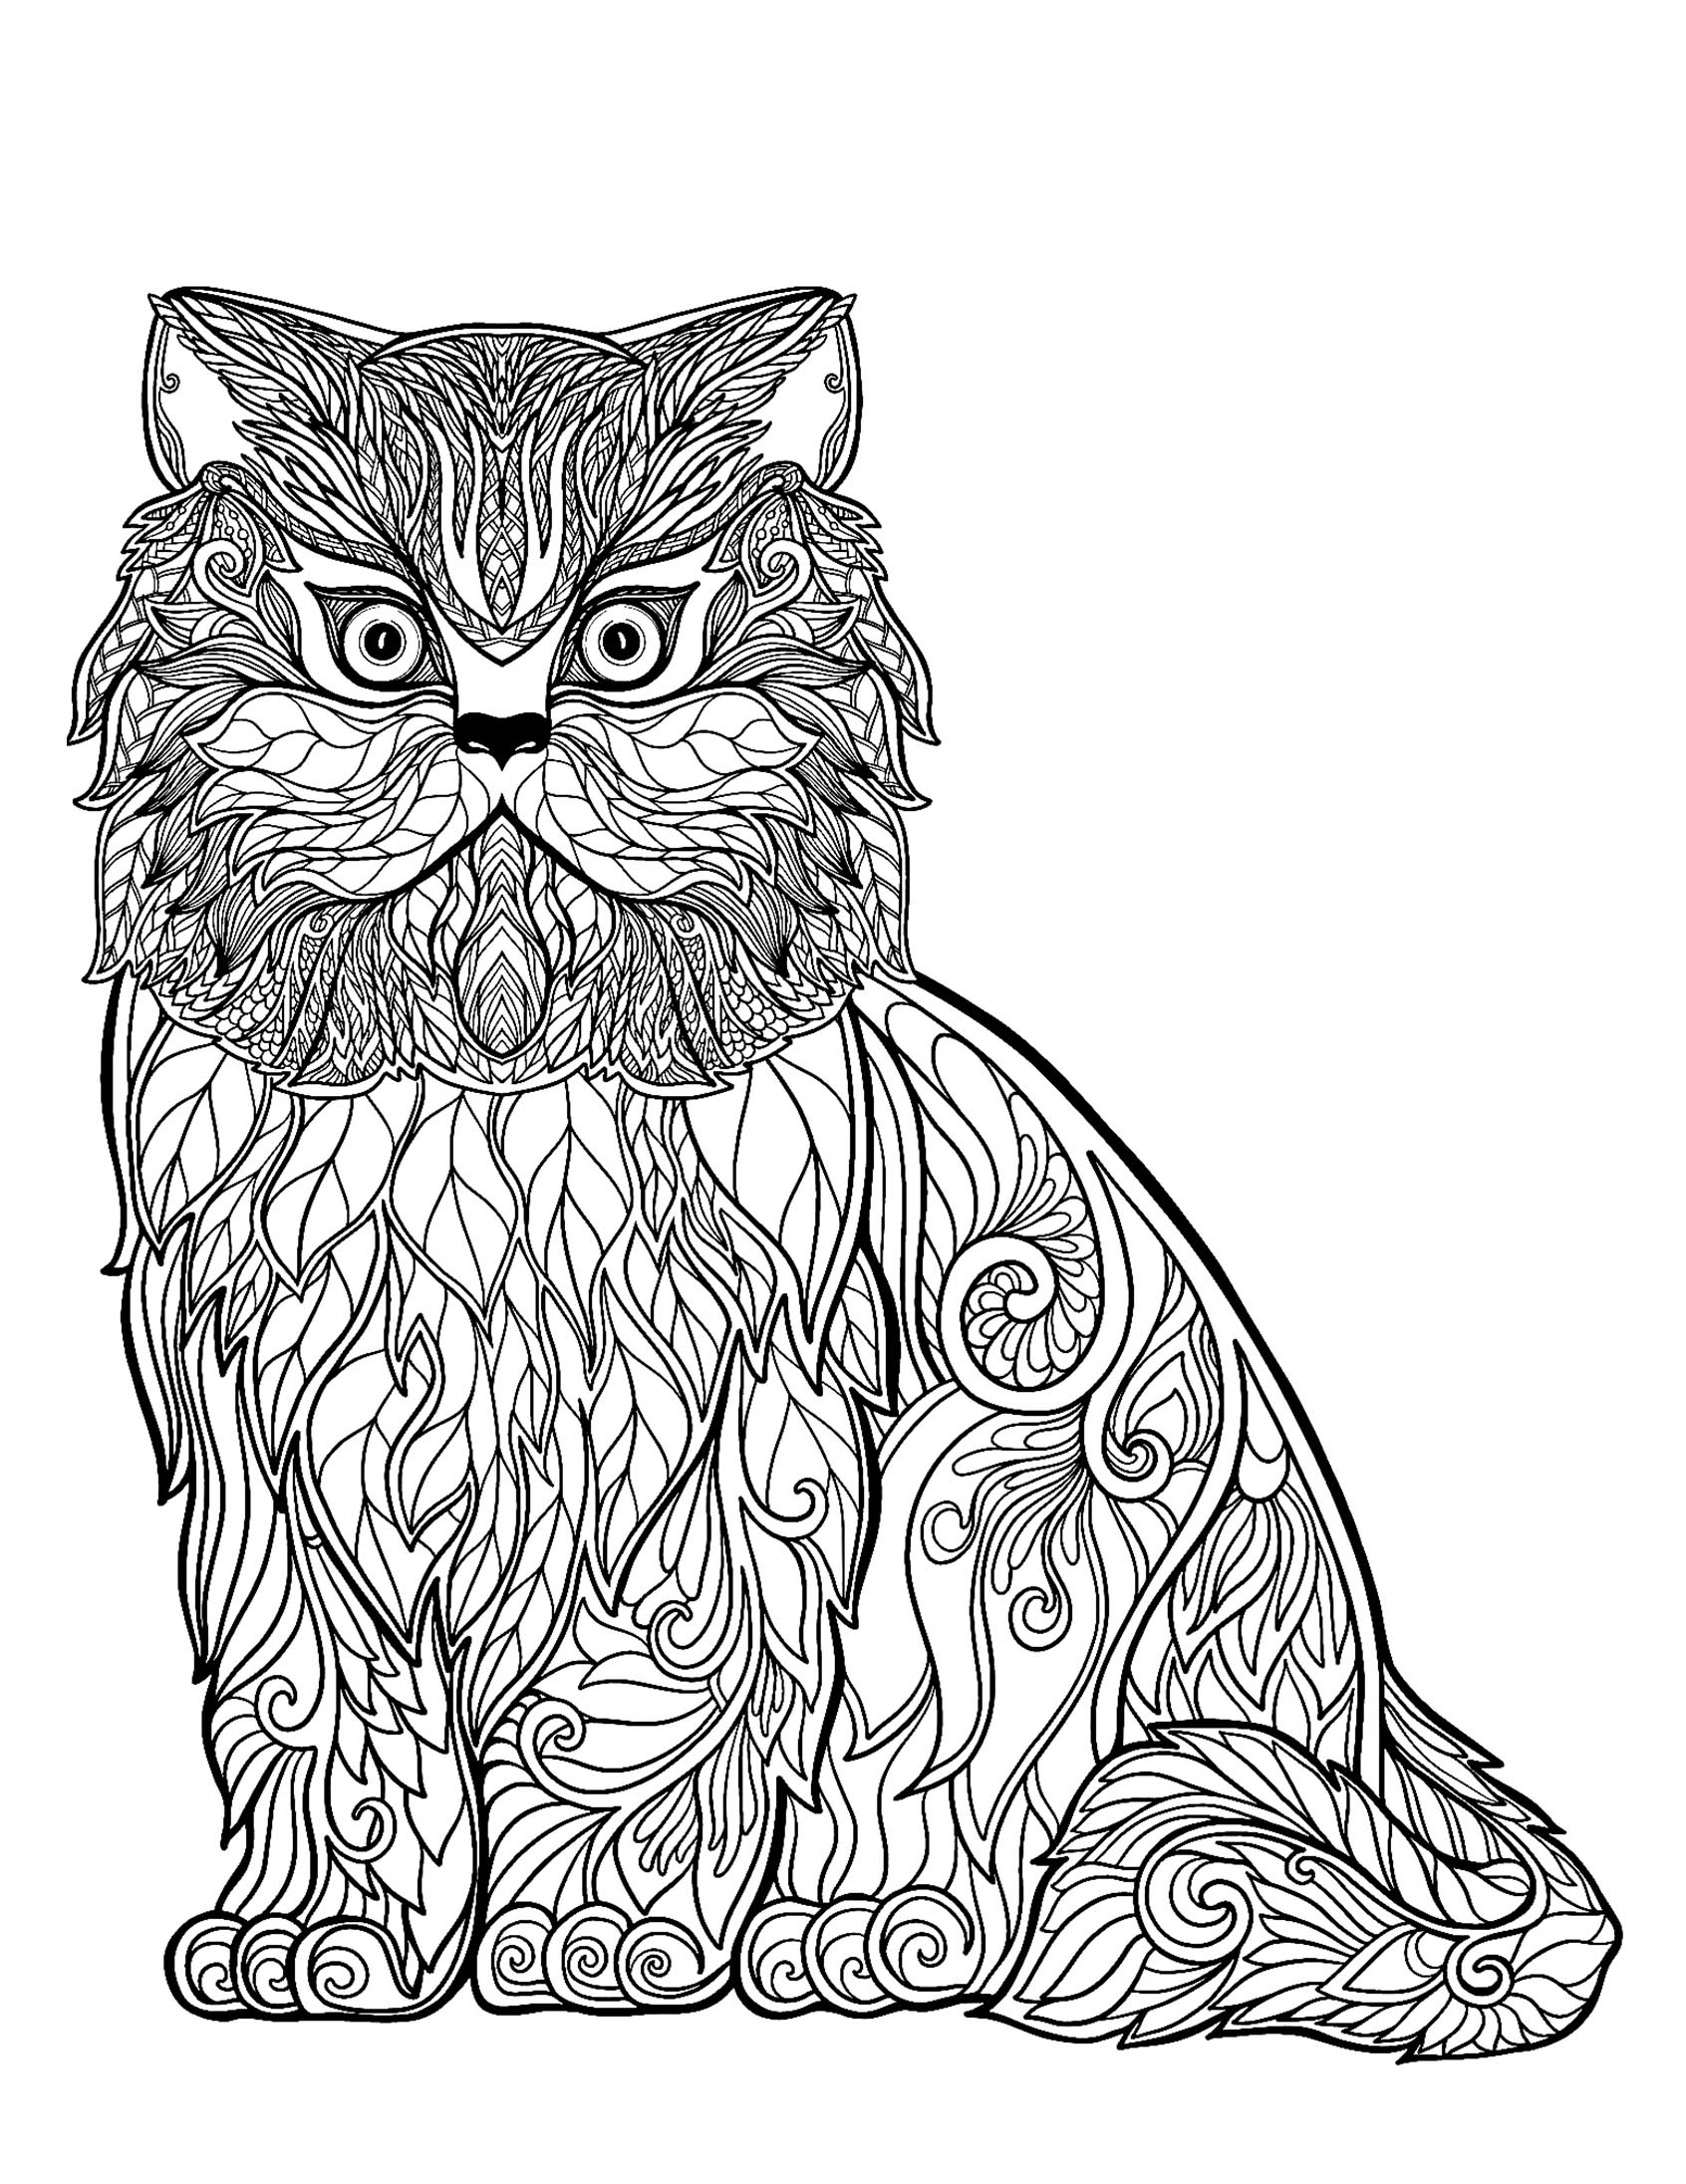 kids coloring pages kitten cat for kids simple drawing cats kids coloring pages pages kids coloring kitten